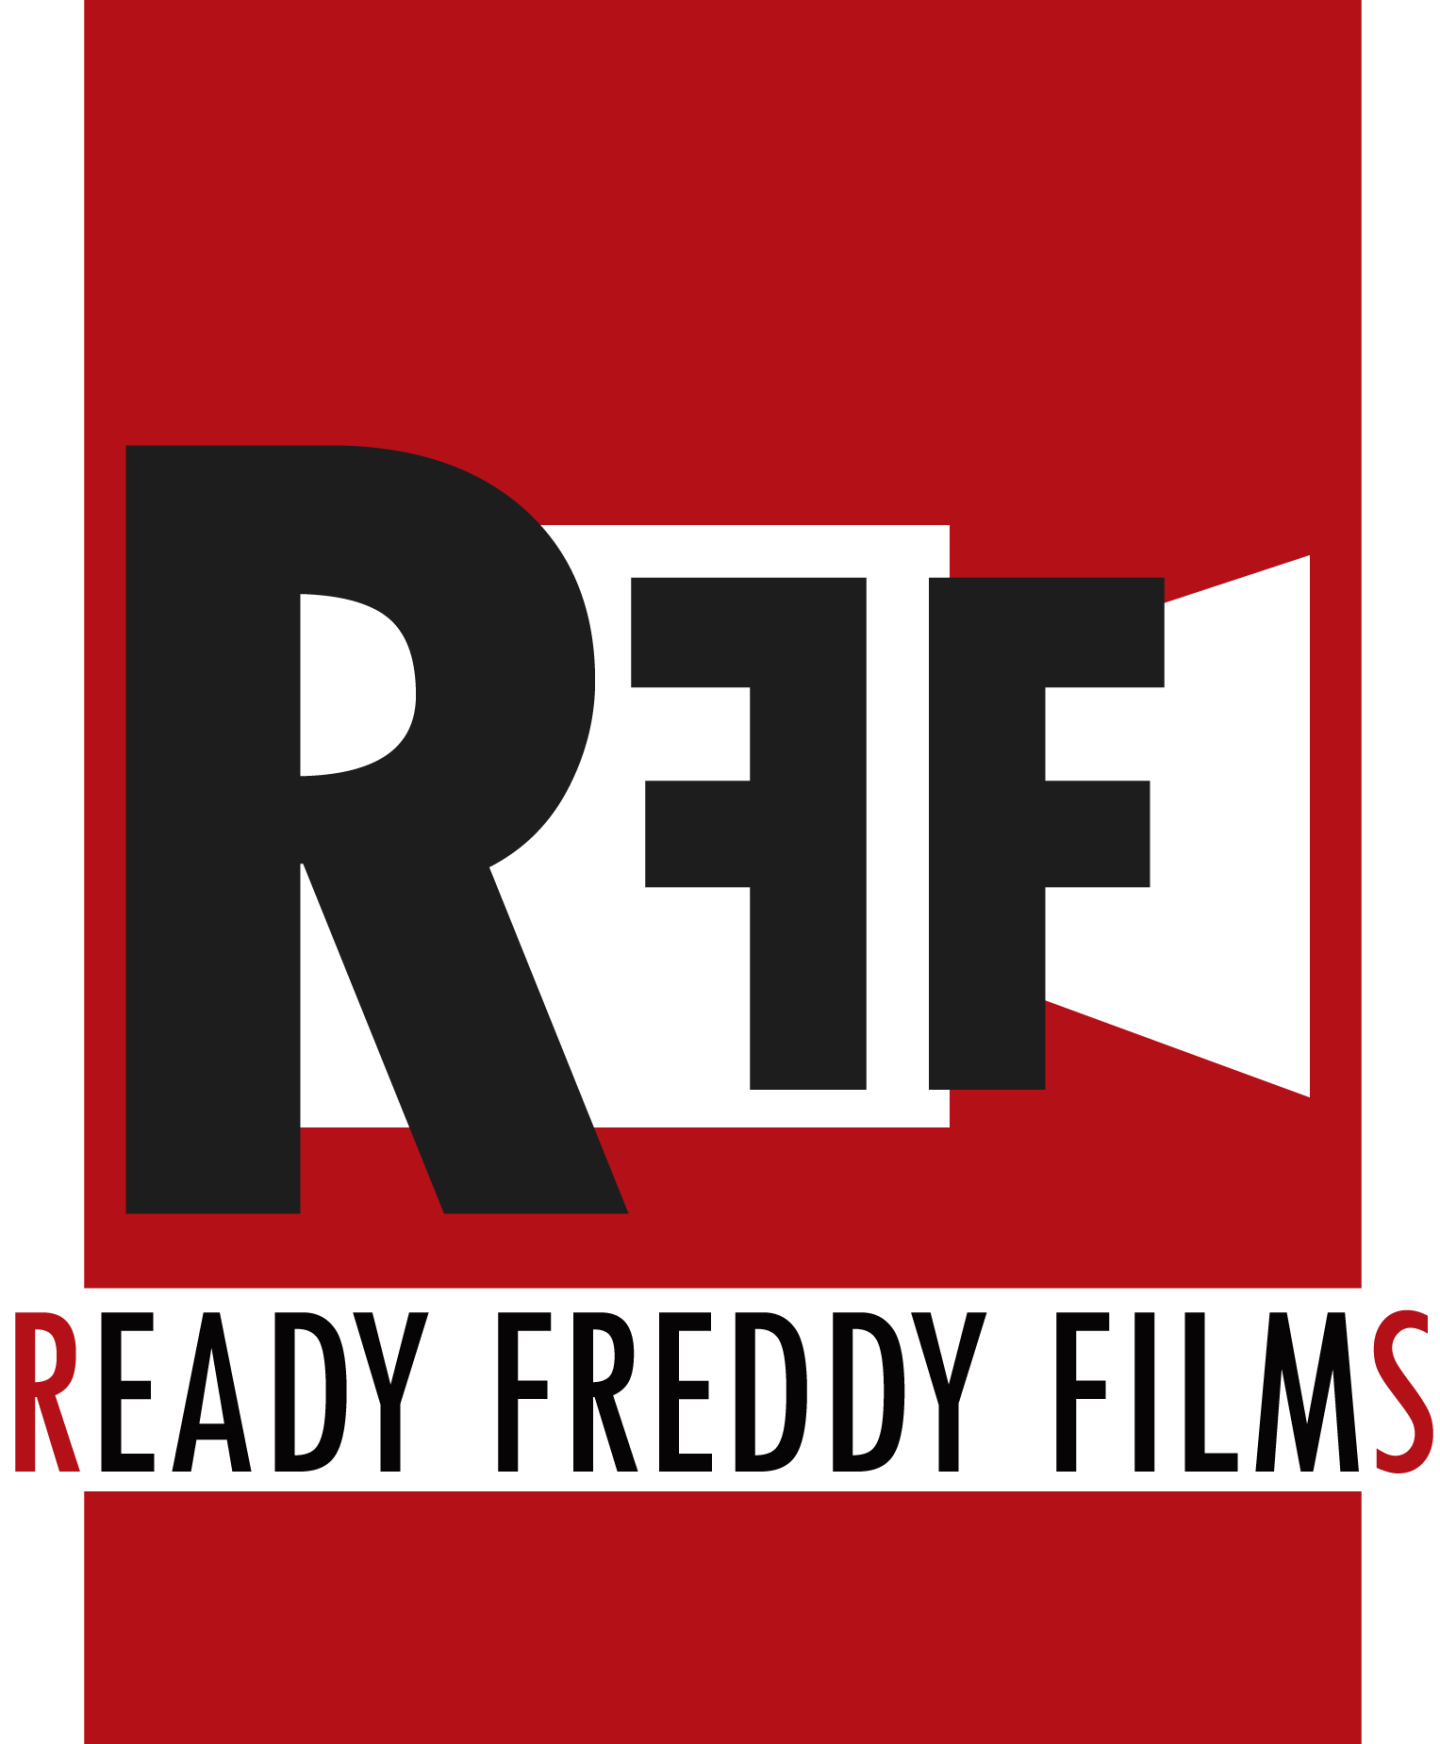 Reality (Feature Film) Streaming for FREE